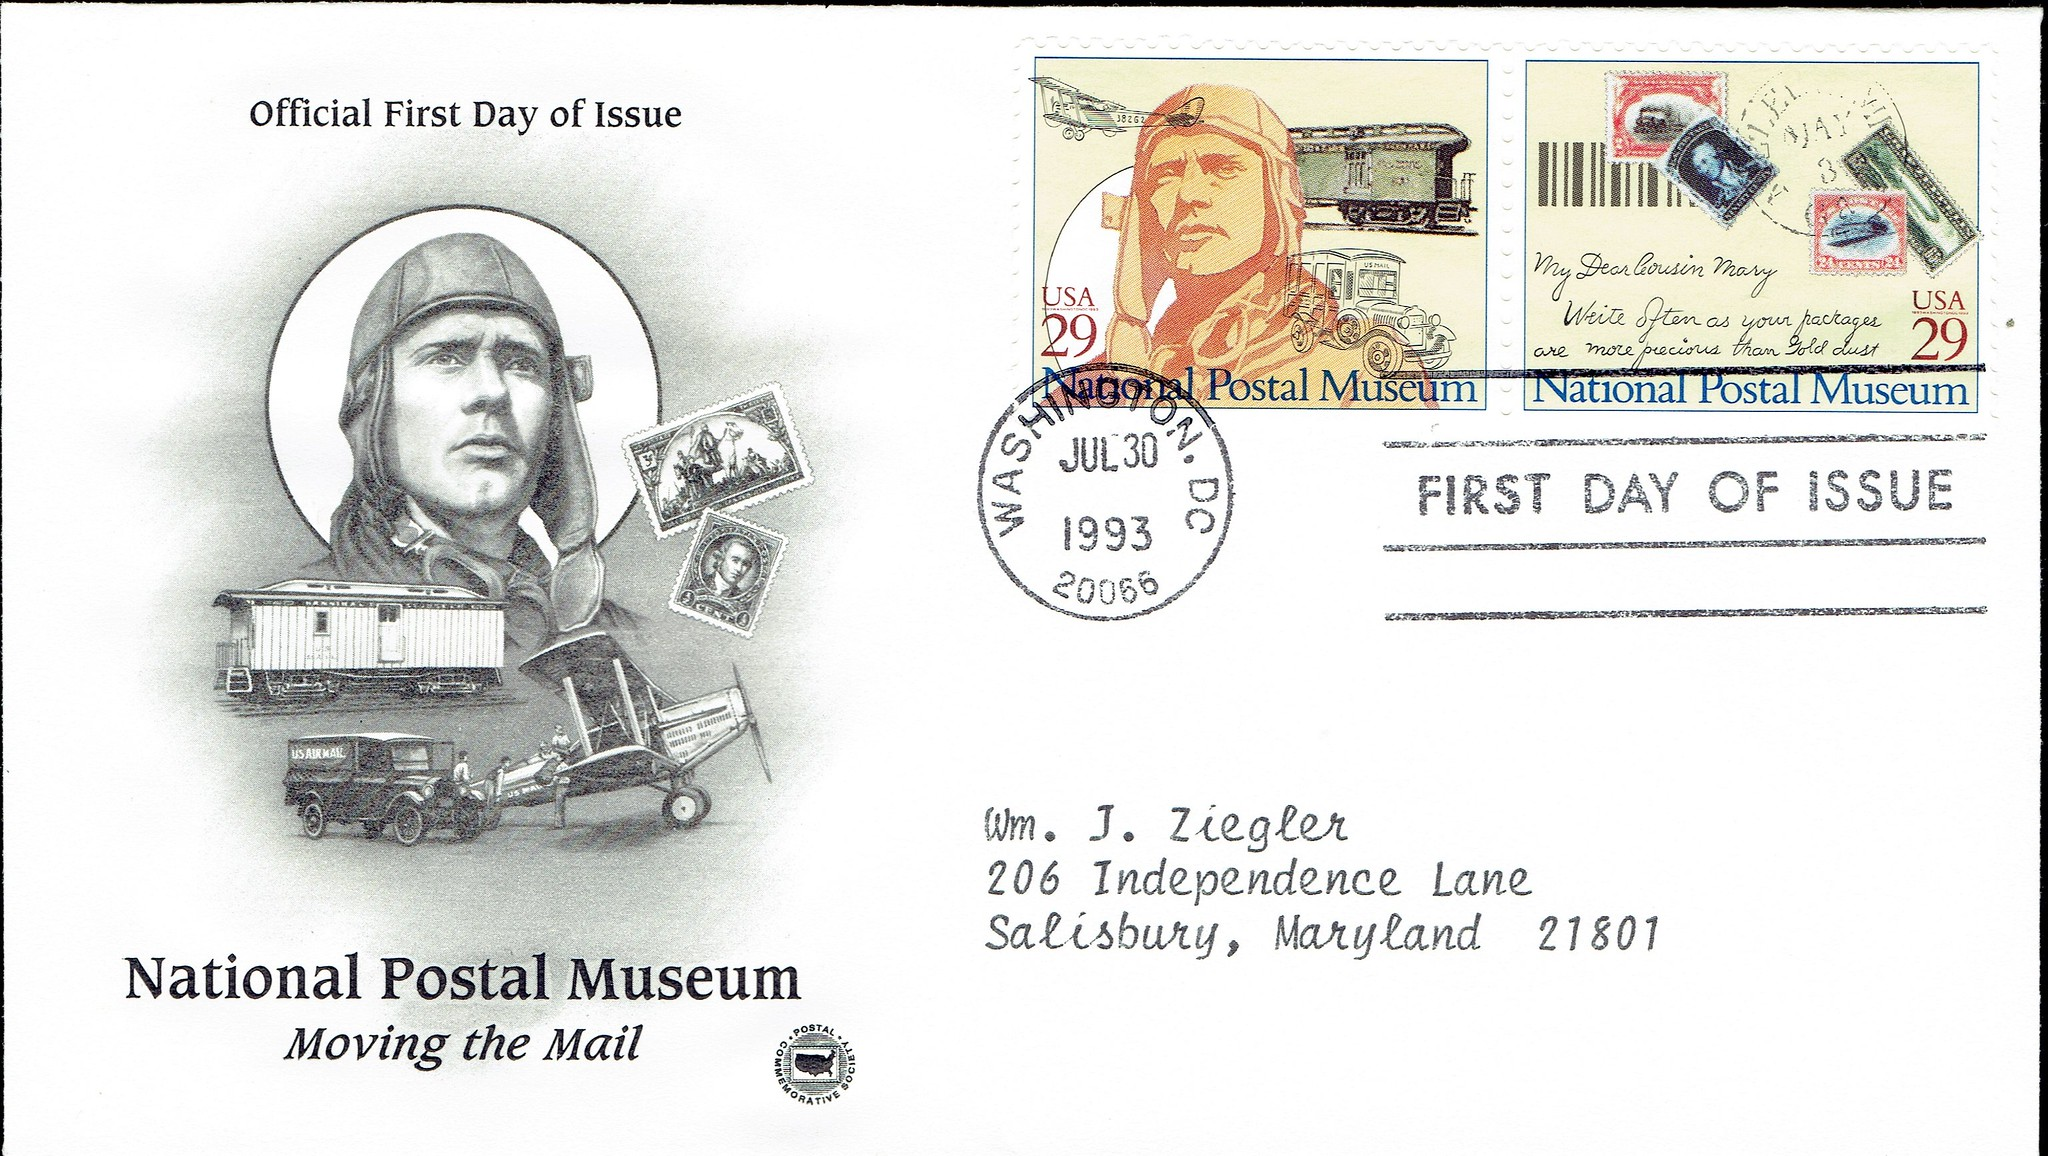 United States - Scott #2781-2782 (1993) first day cover from Postal Commemorative Society